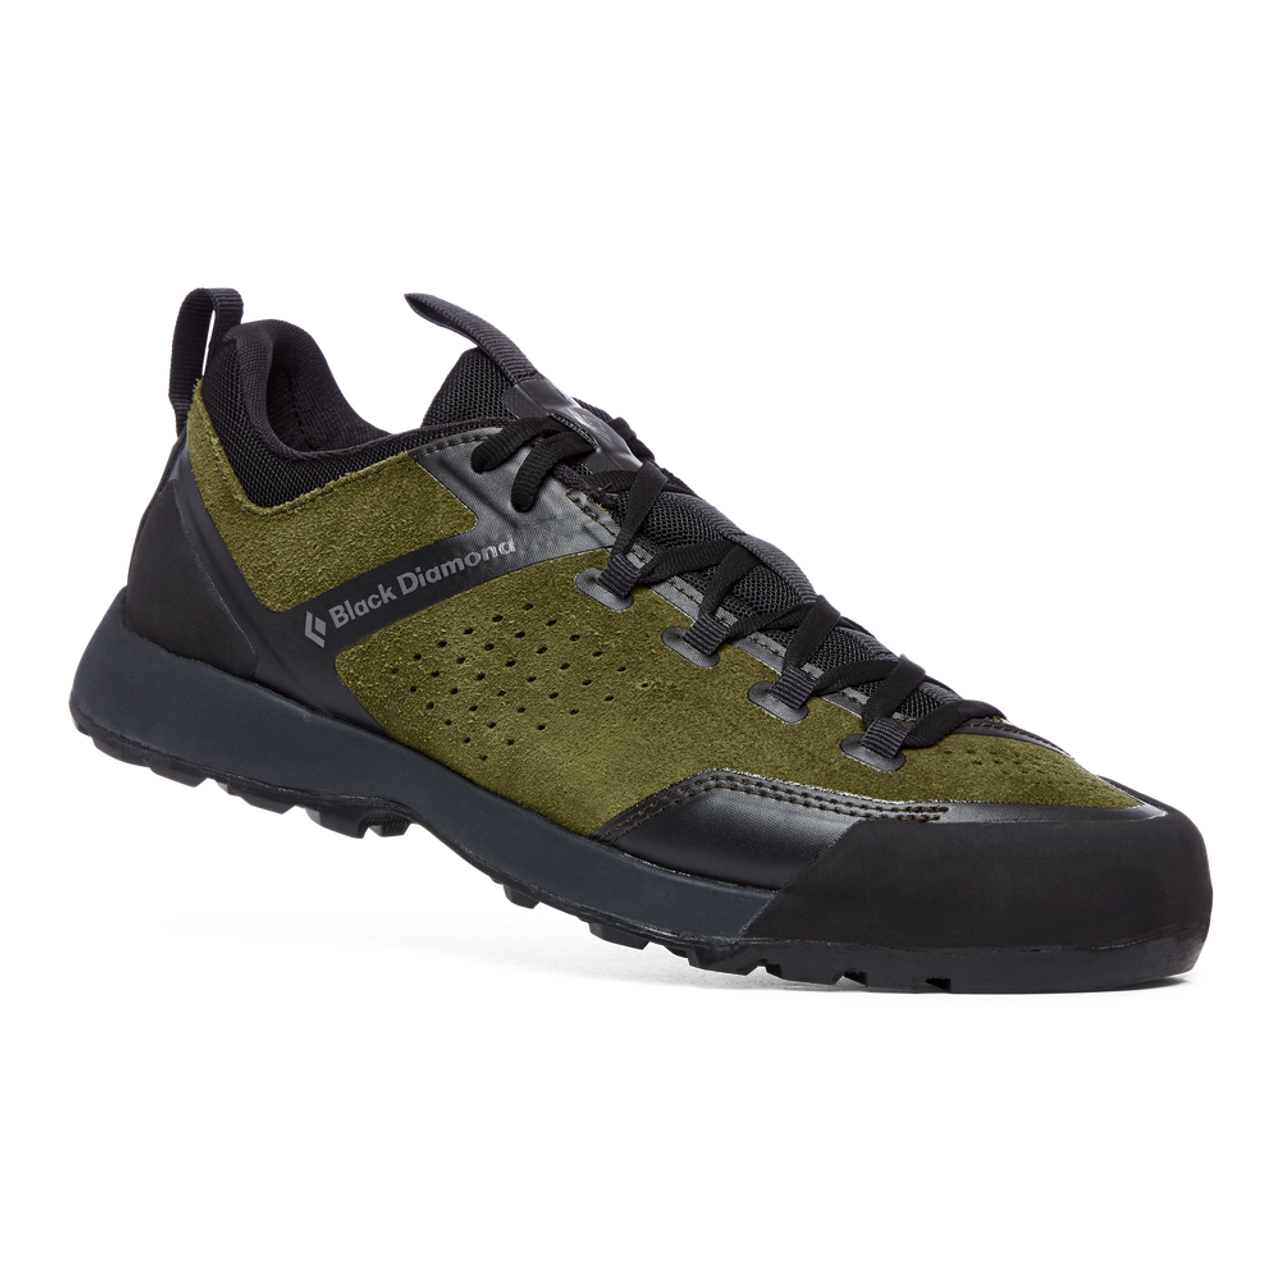 Black Diamond Mission XP Leather Low - Men's Approach Shoe - Side - Online at Mountain Mail Order South Africa